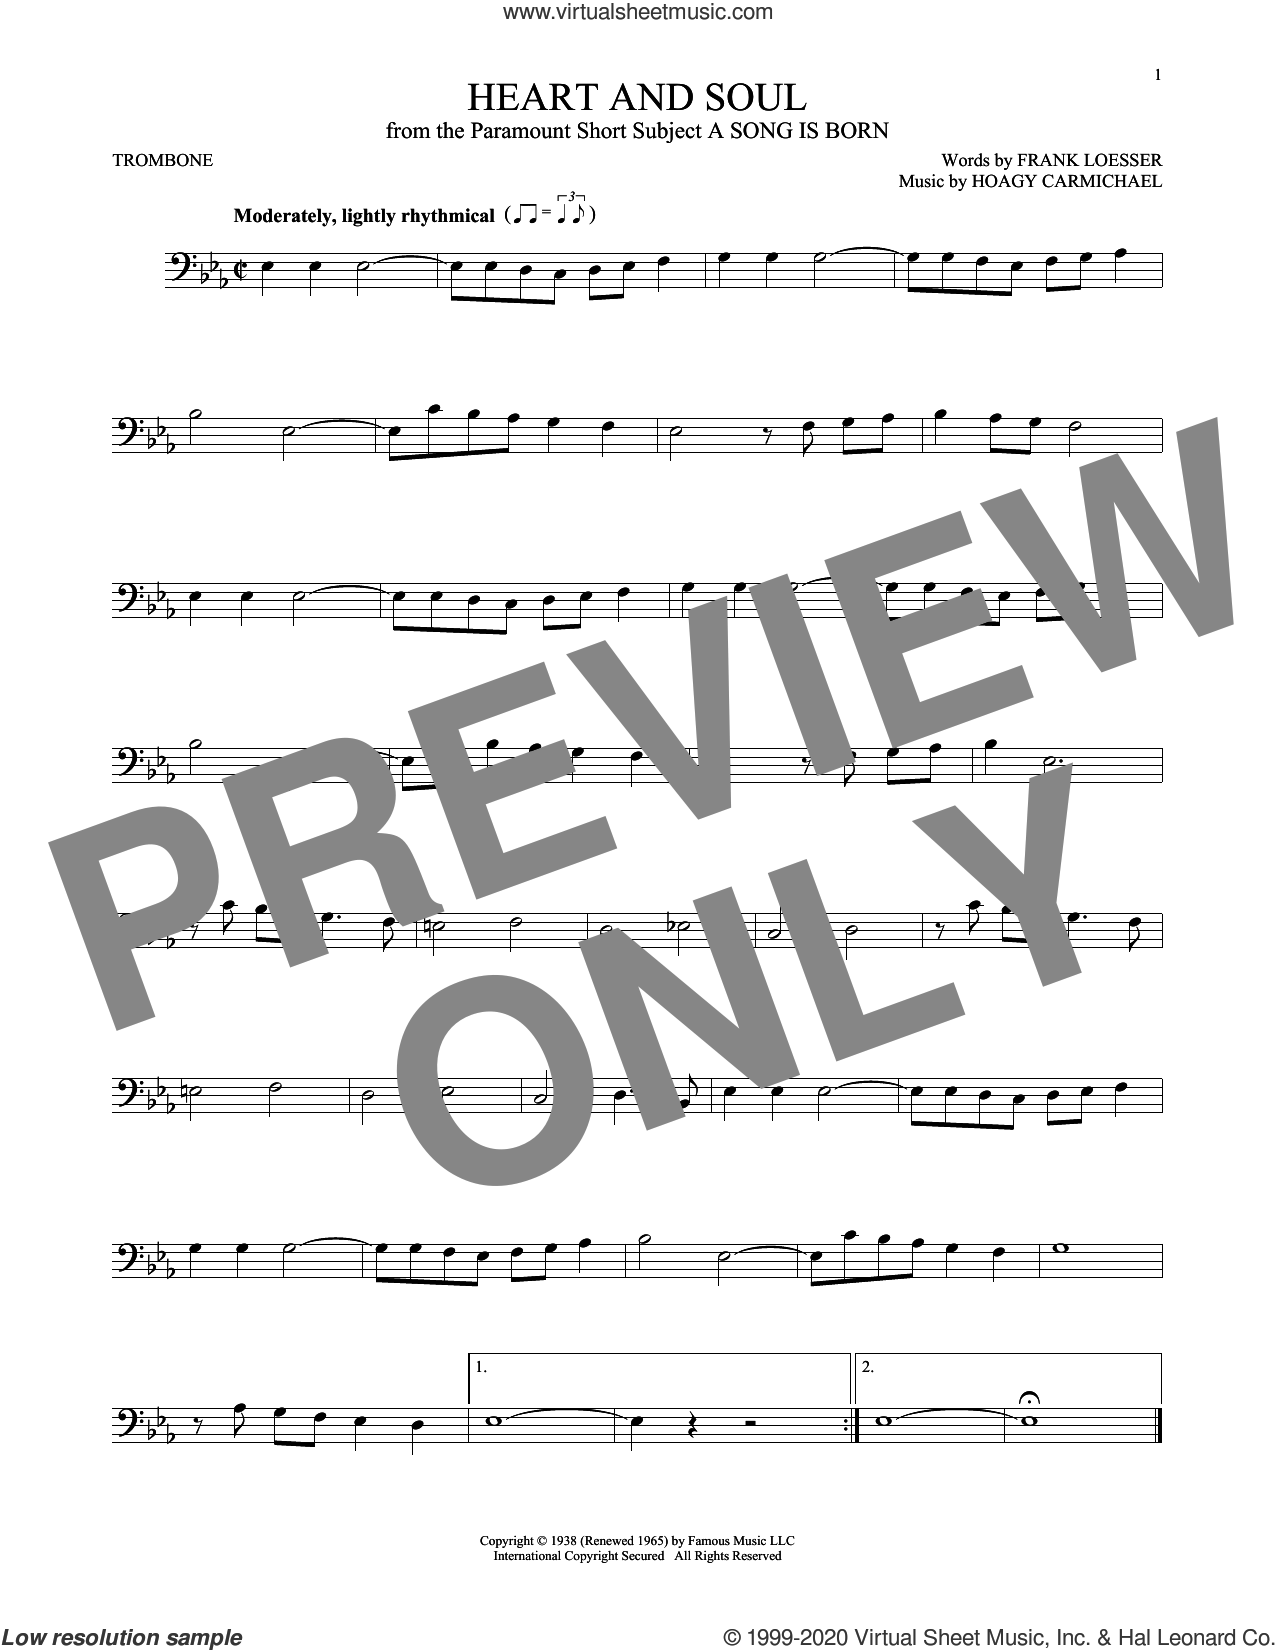 Heart And Soul sheet music for trombone solo by Frank Loesser and Hoagy Carmichael, intermediate skill level